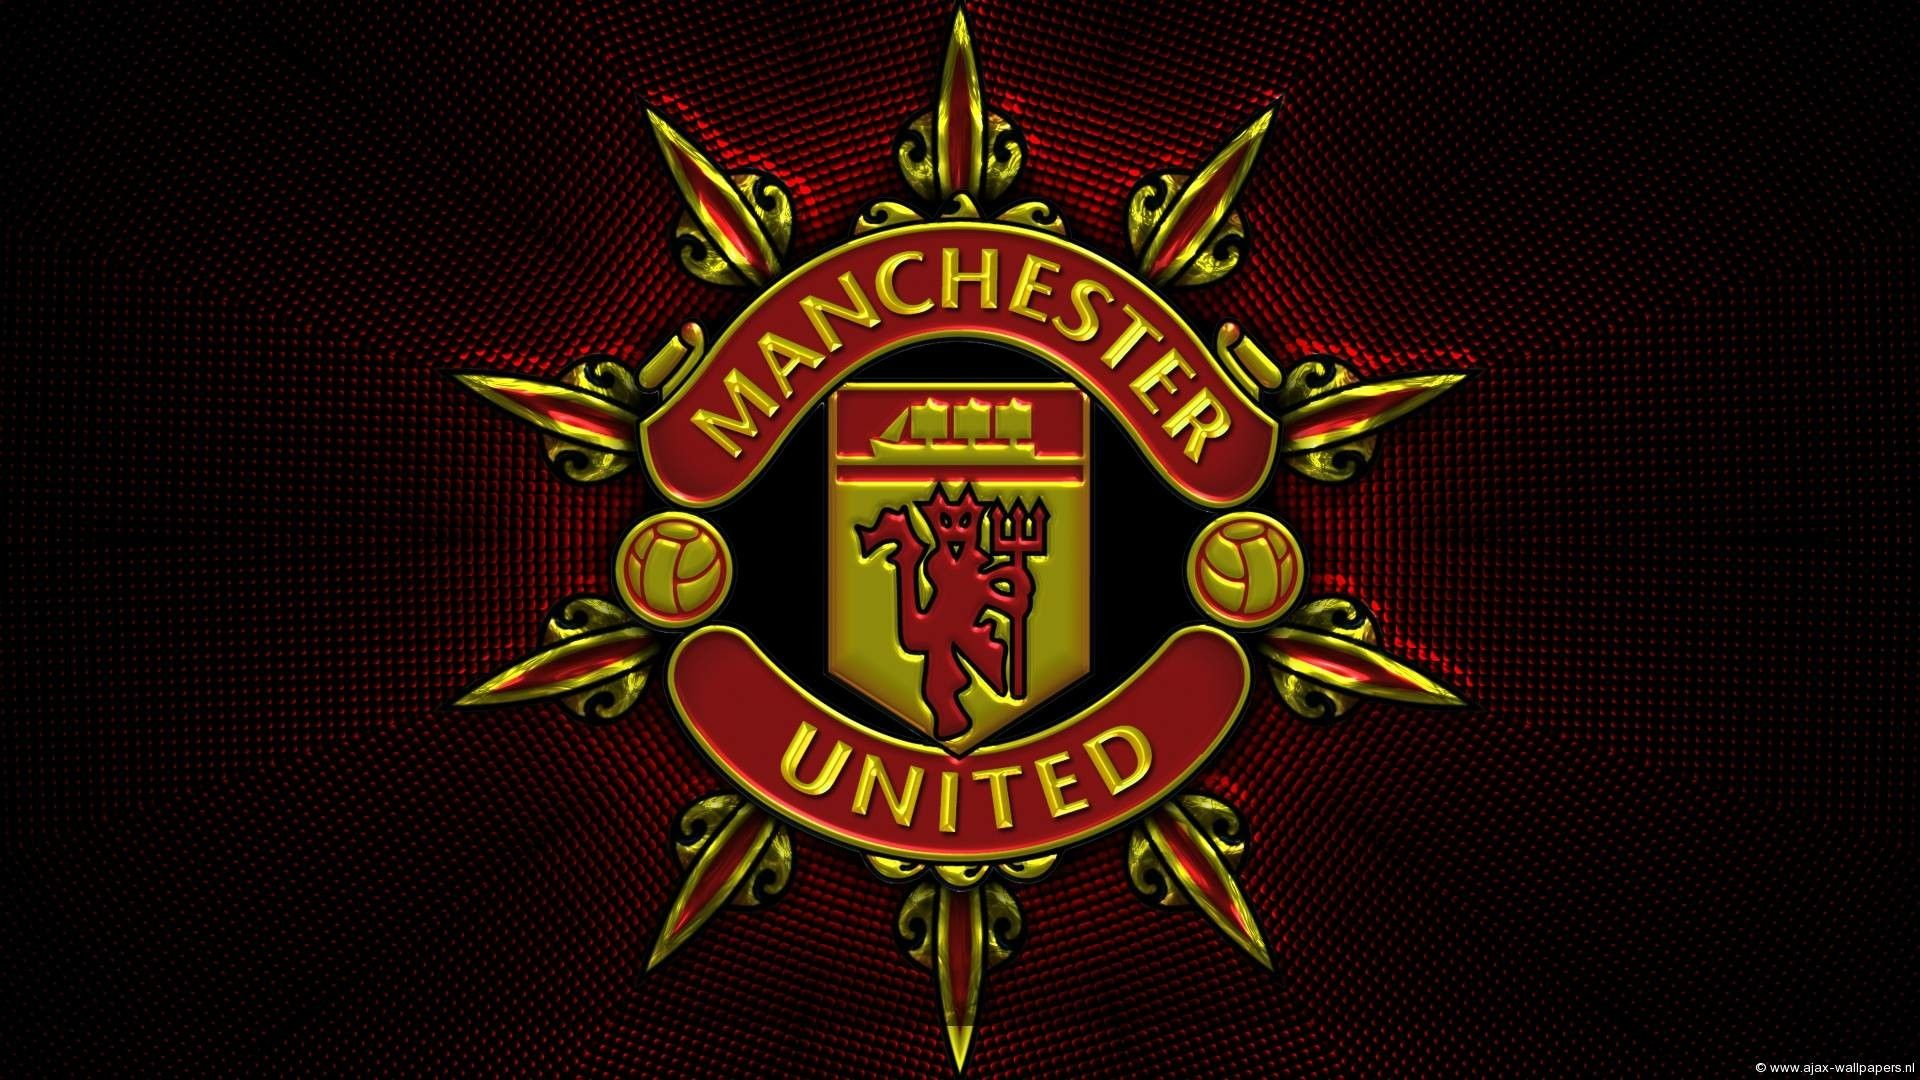 Wallpaper Logo Manchester United Terbaru 2018 (70+ pictures)